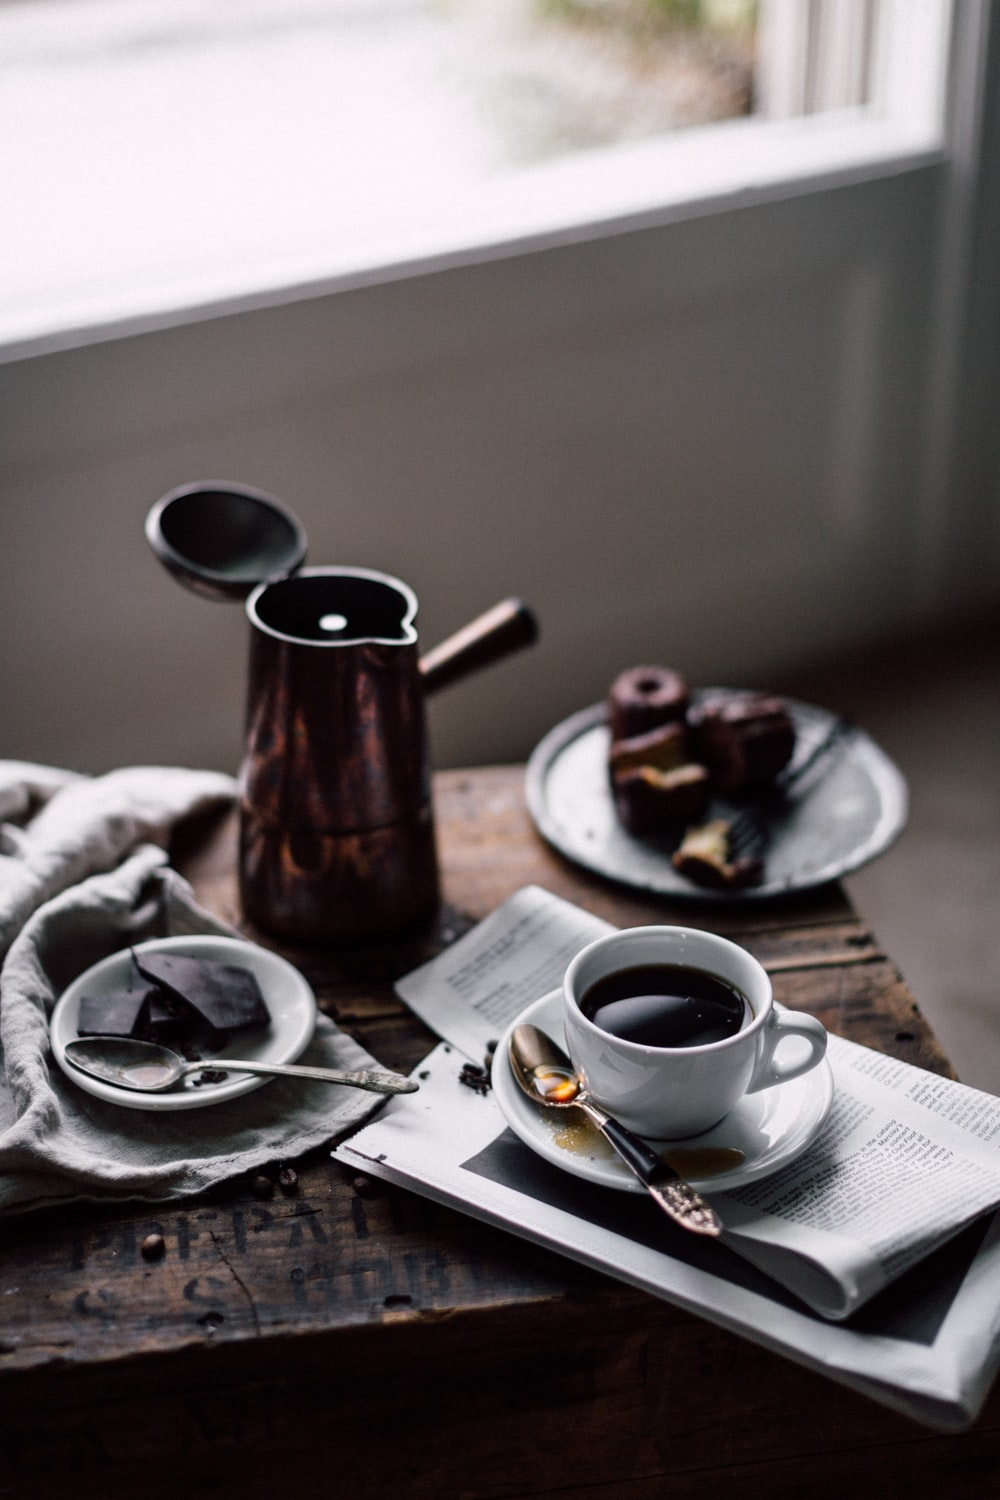 coffees in white ceramic mug on brown wooden table